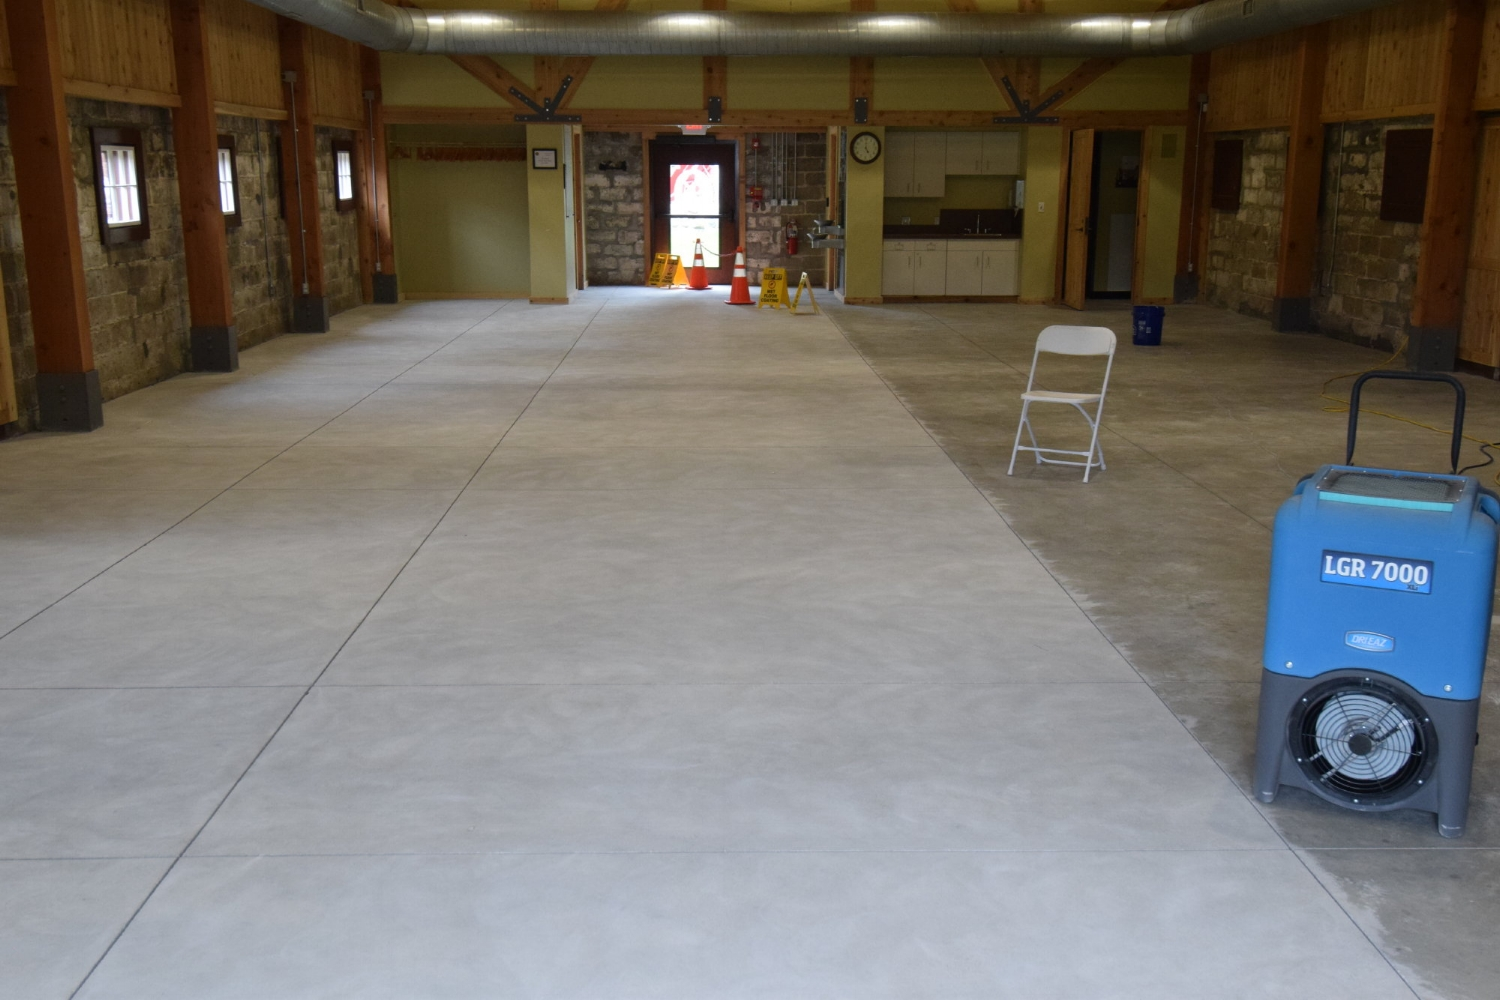 Museum Concrete Floor Being Diamond Ground In Preparation For Clear Sealer